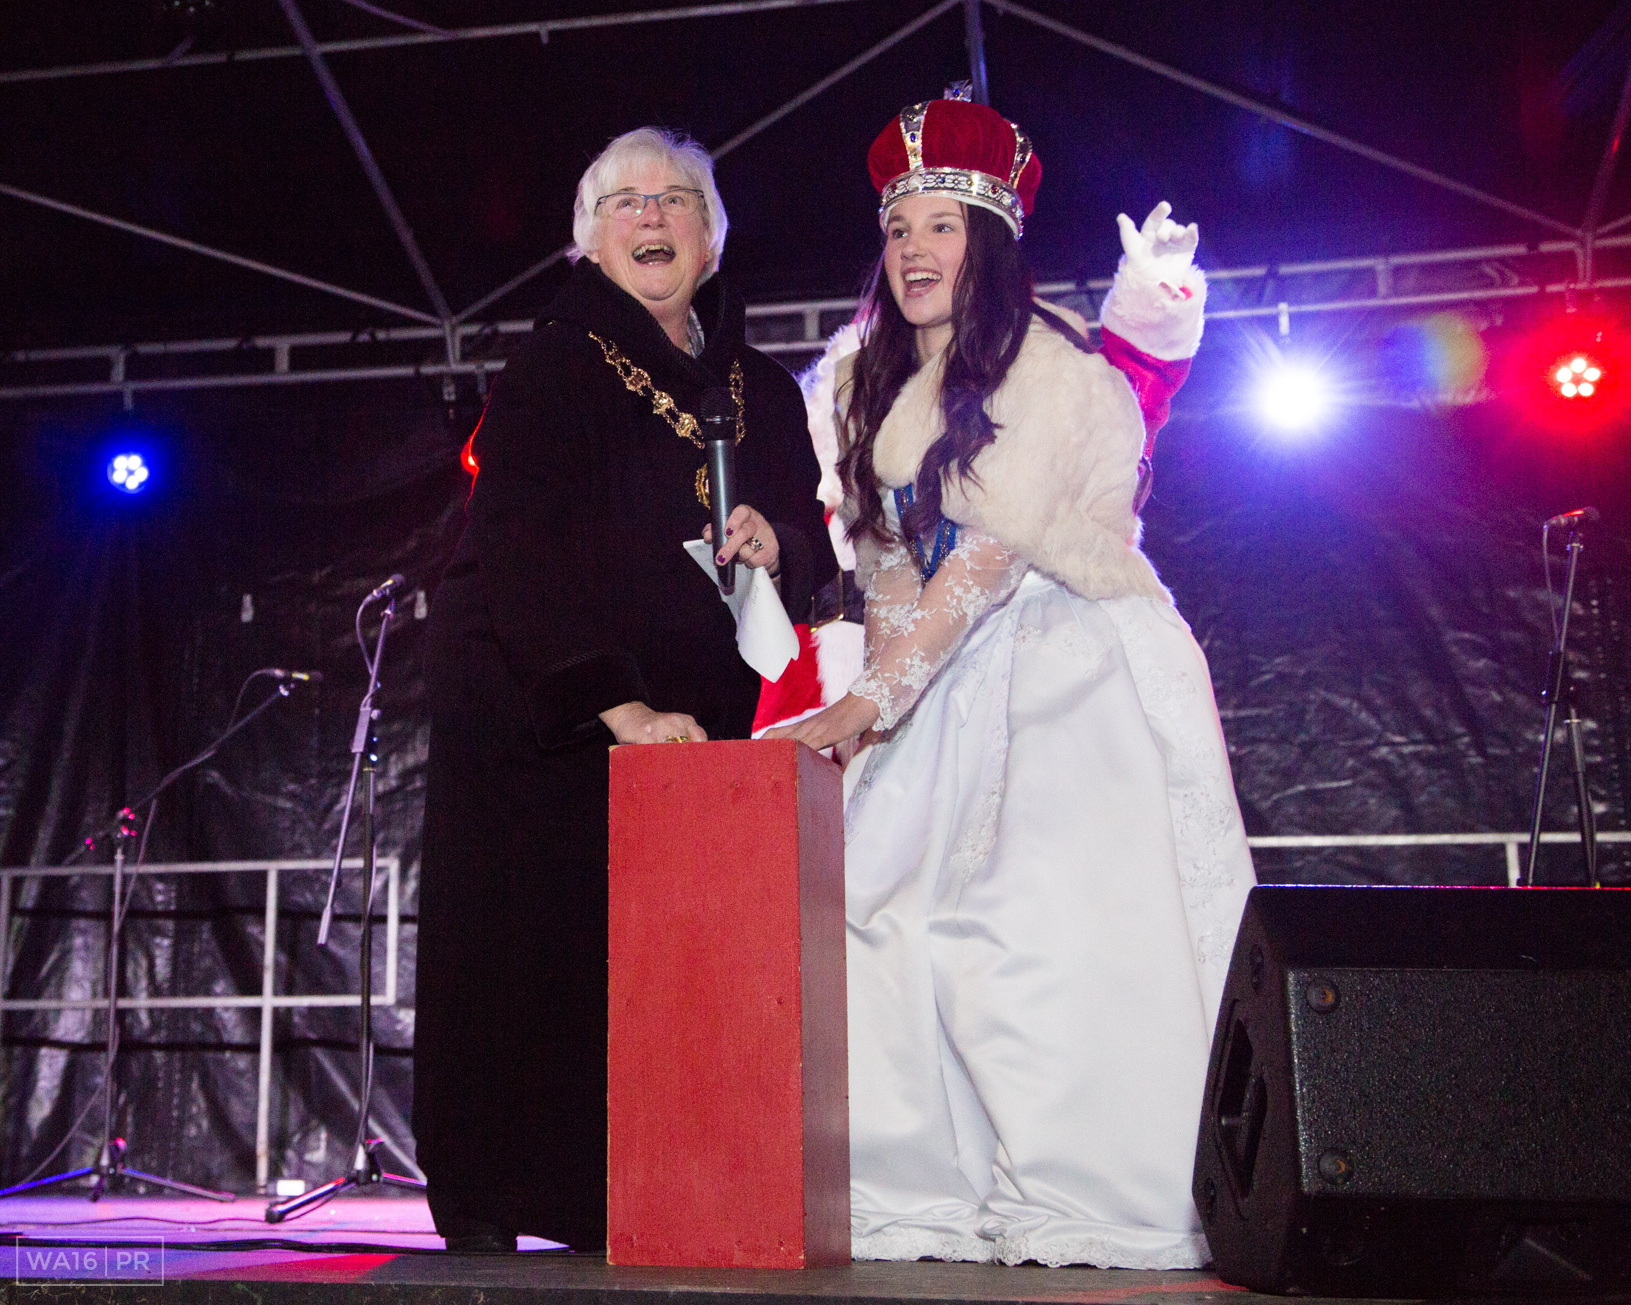 PICTURES: Knutsford's Christmas weekend hailed as 'best yet'